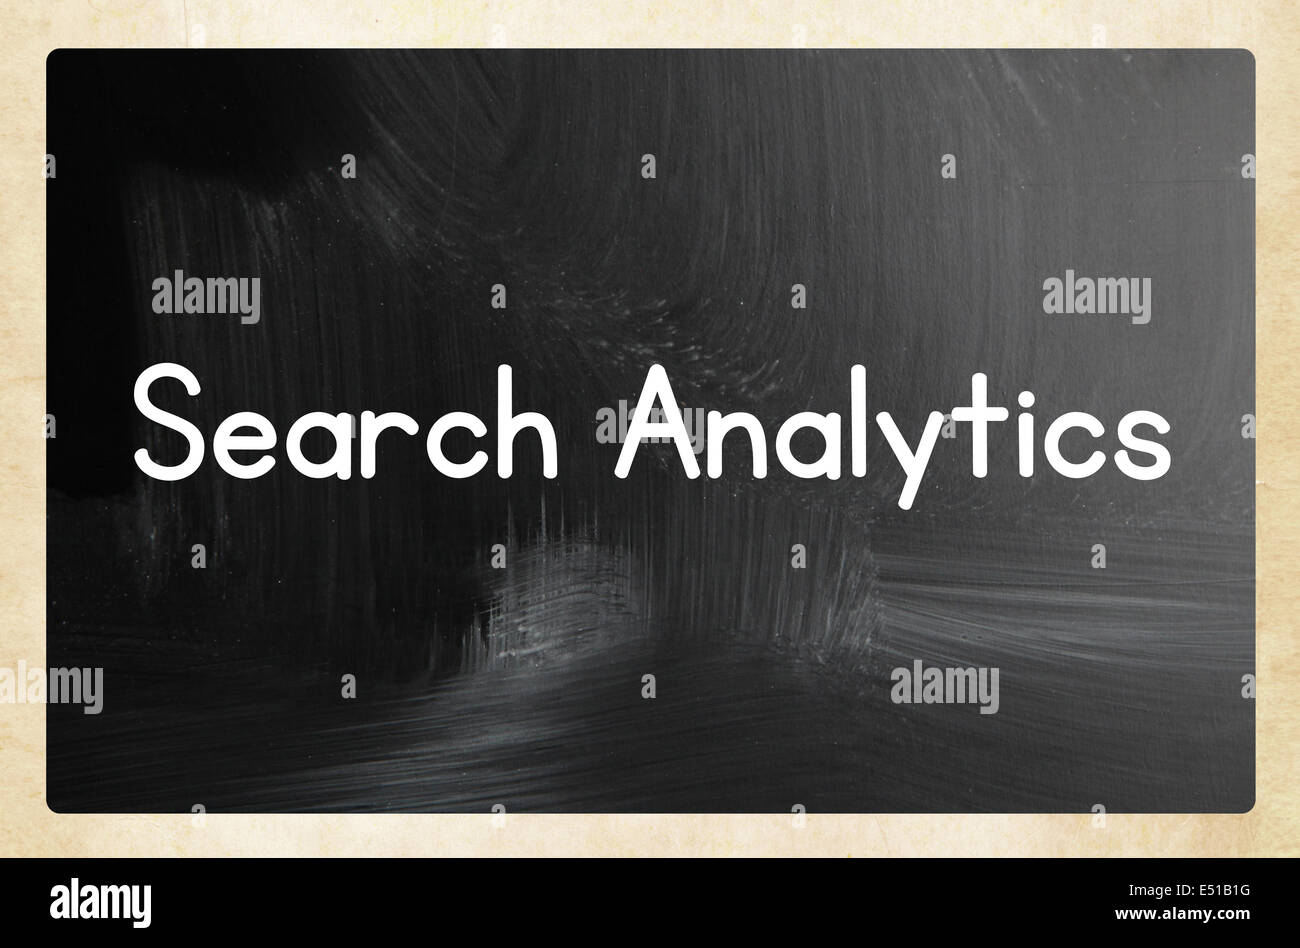 search analytics concept - Stock Image